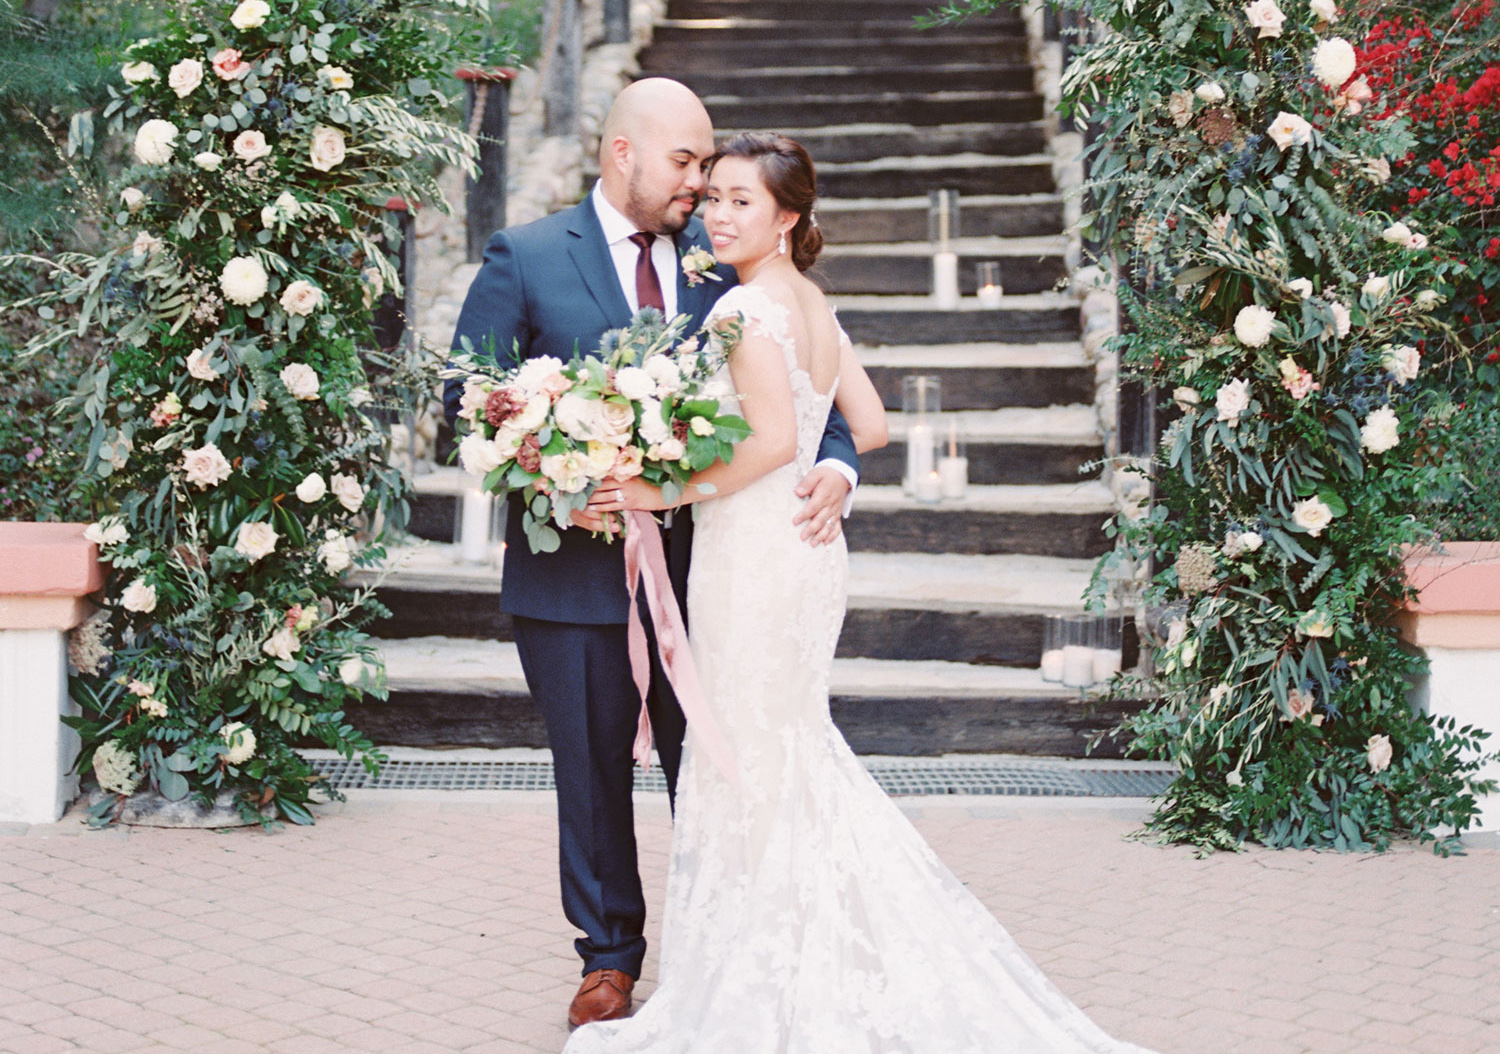 bride and groom in front of wooden staircase with florals and greenery on both sides